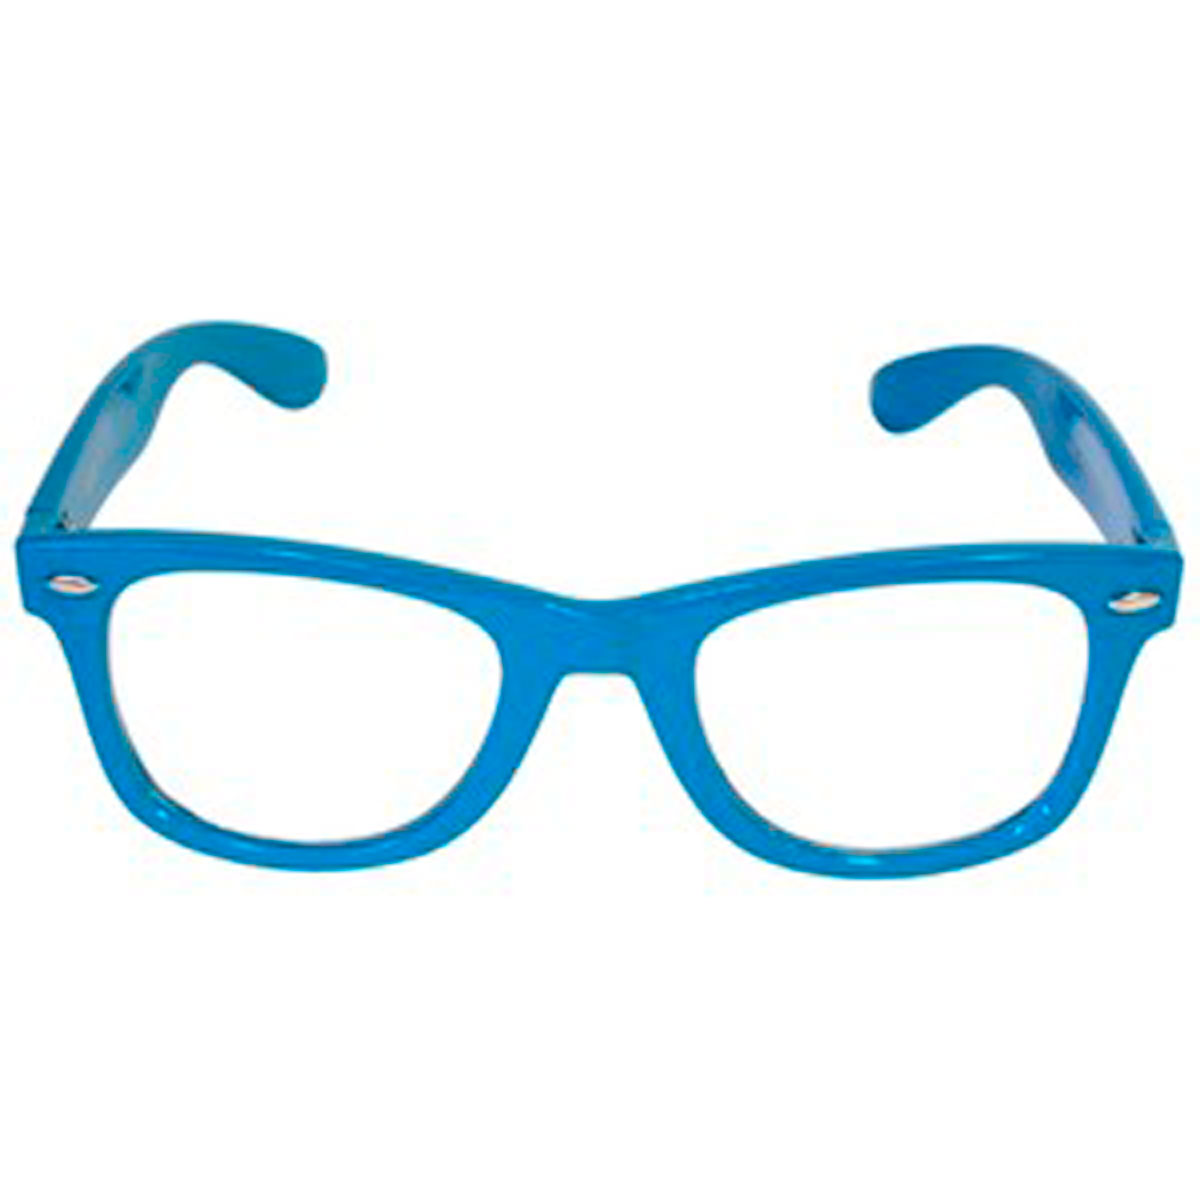 Glasses Frame Help : Lost Blue Frame Child s Glasses Please Help Twin ...